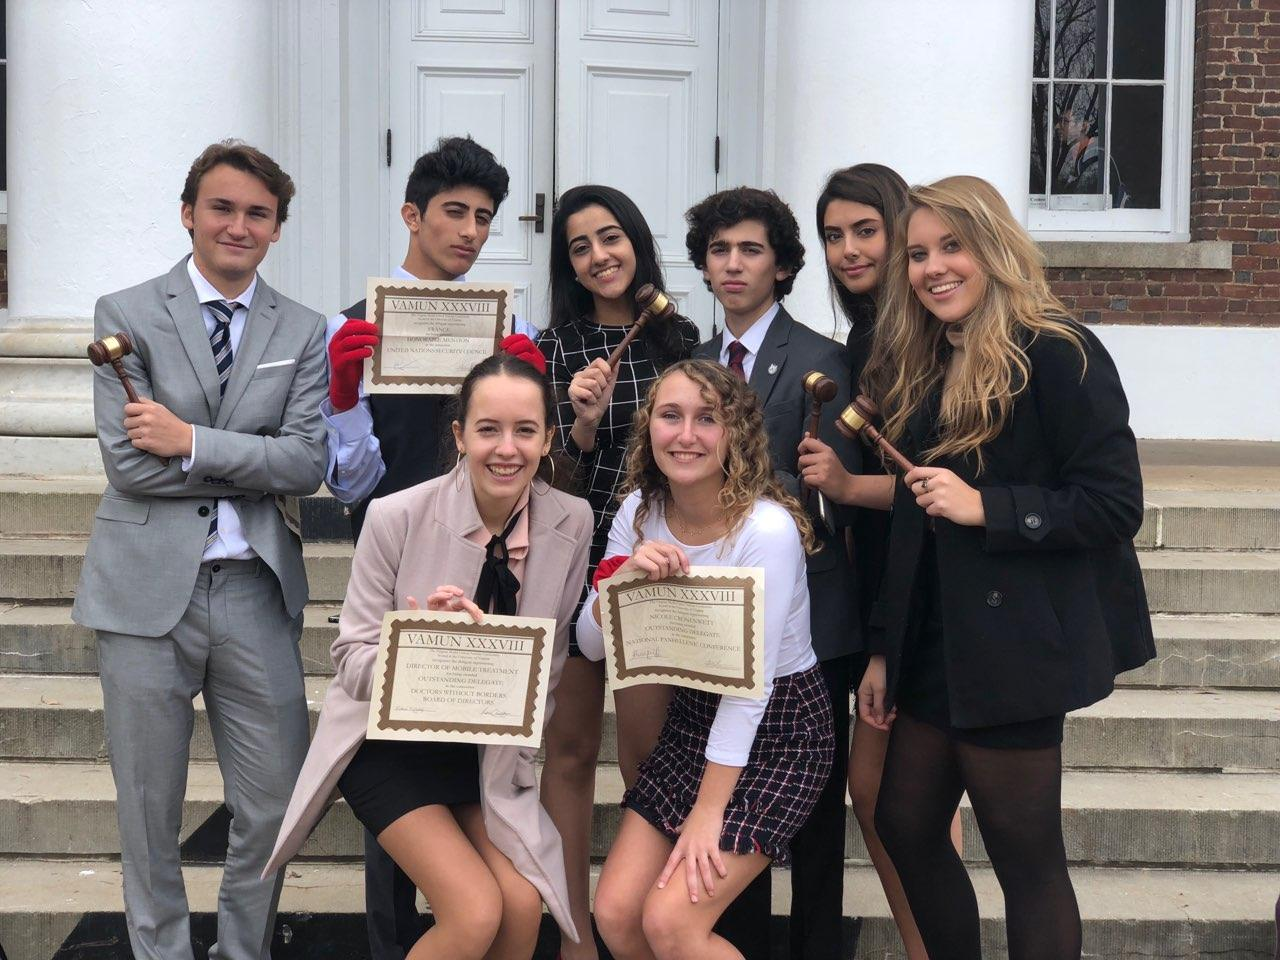 Seniors of the McLean Model United Nations team pose with awards received at VAMUN on Nov. 18. The team was very successful, receiving many individual awards at the conference. (photo courtesy of Maria McHugo)